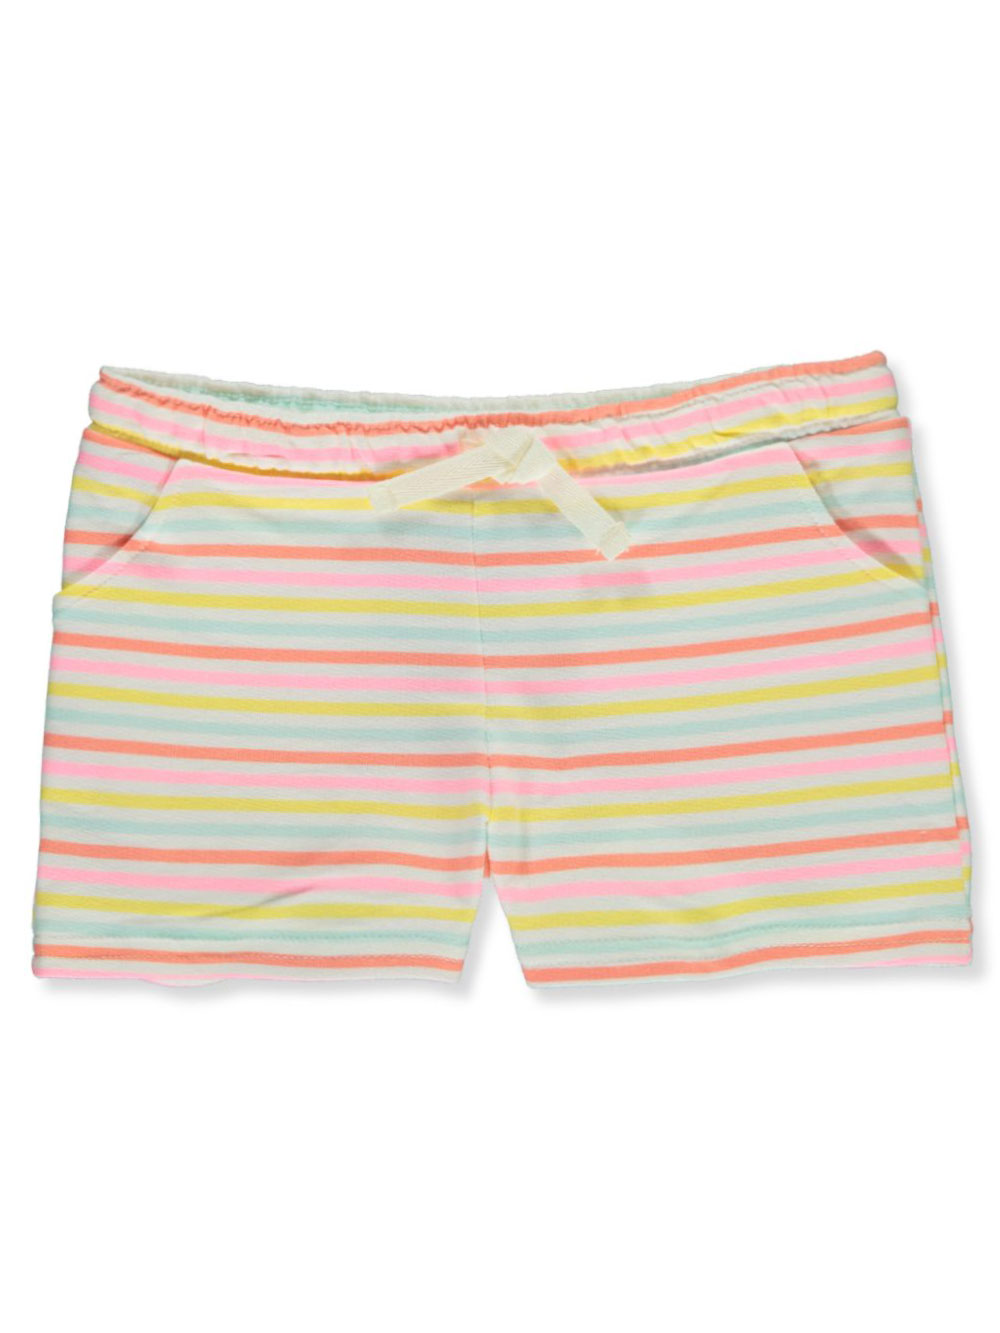 Girls' Striped Terry Shorts